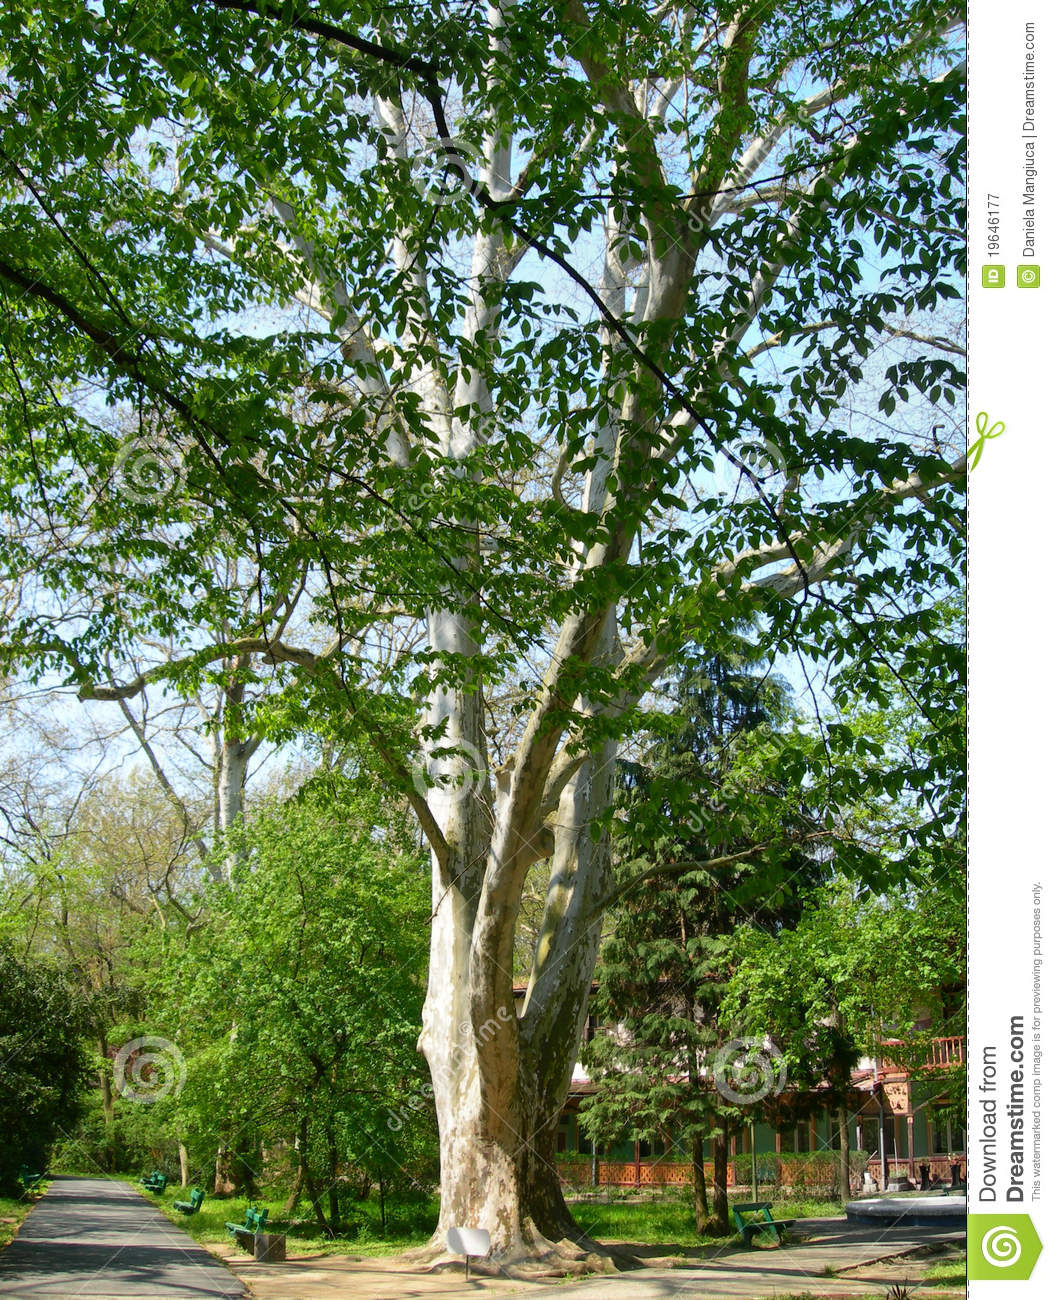 Platanus Orientalis - old Plane tree with lush foliage in summer.